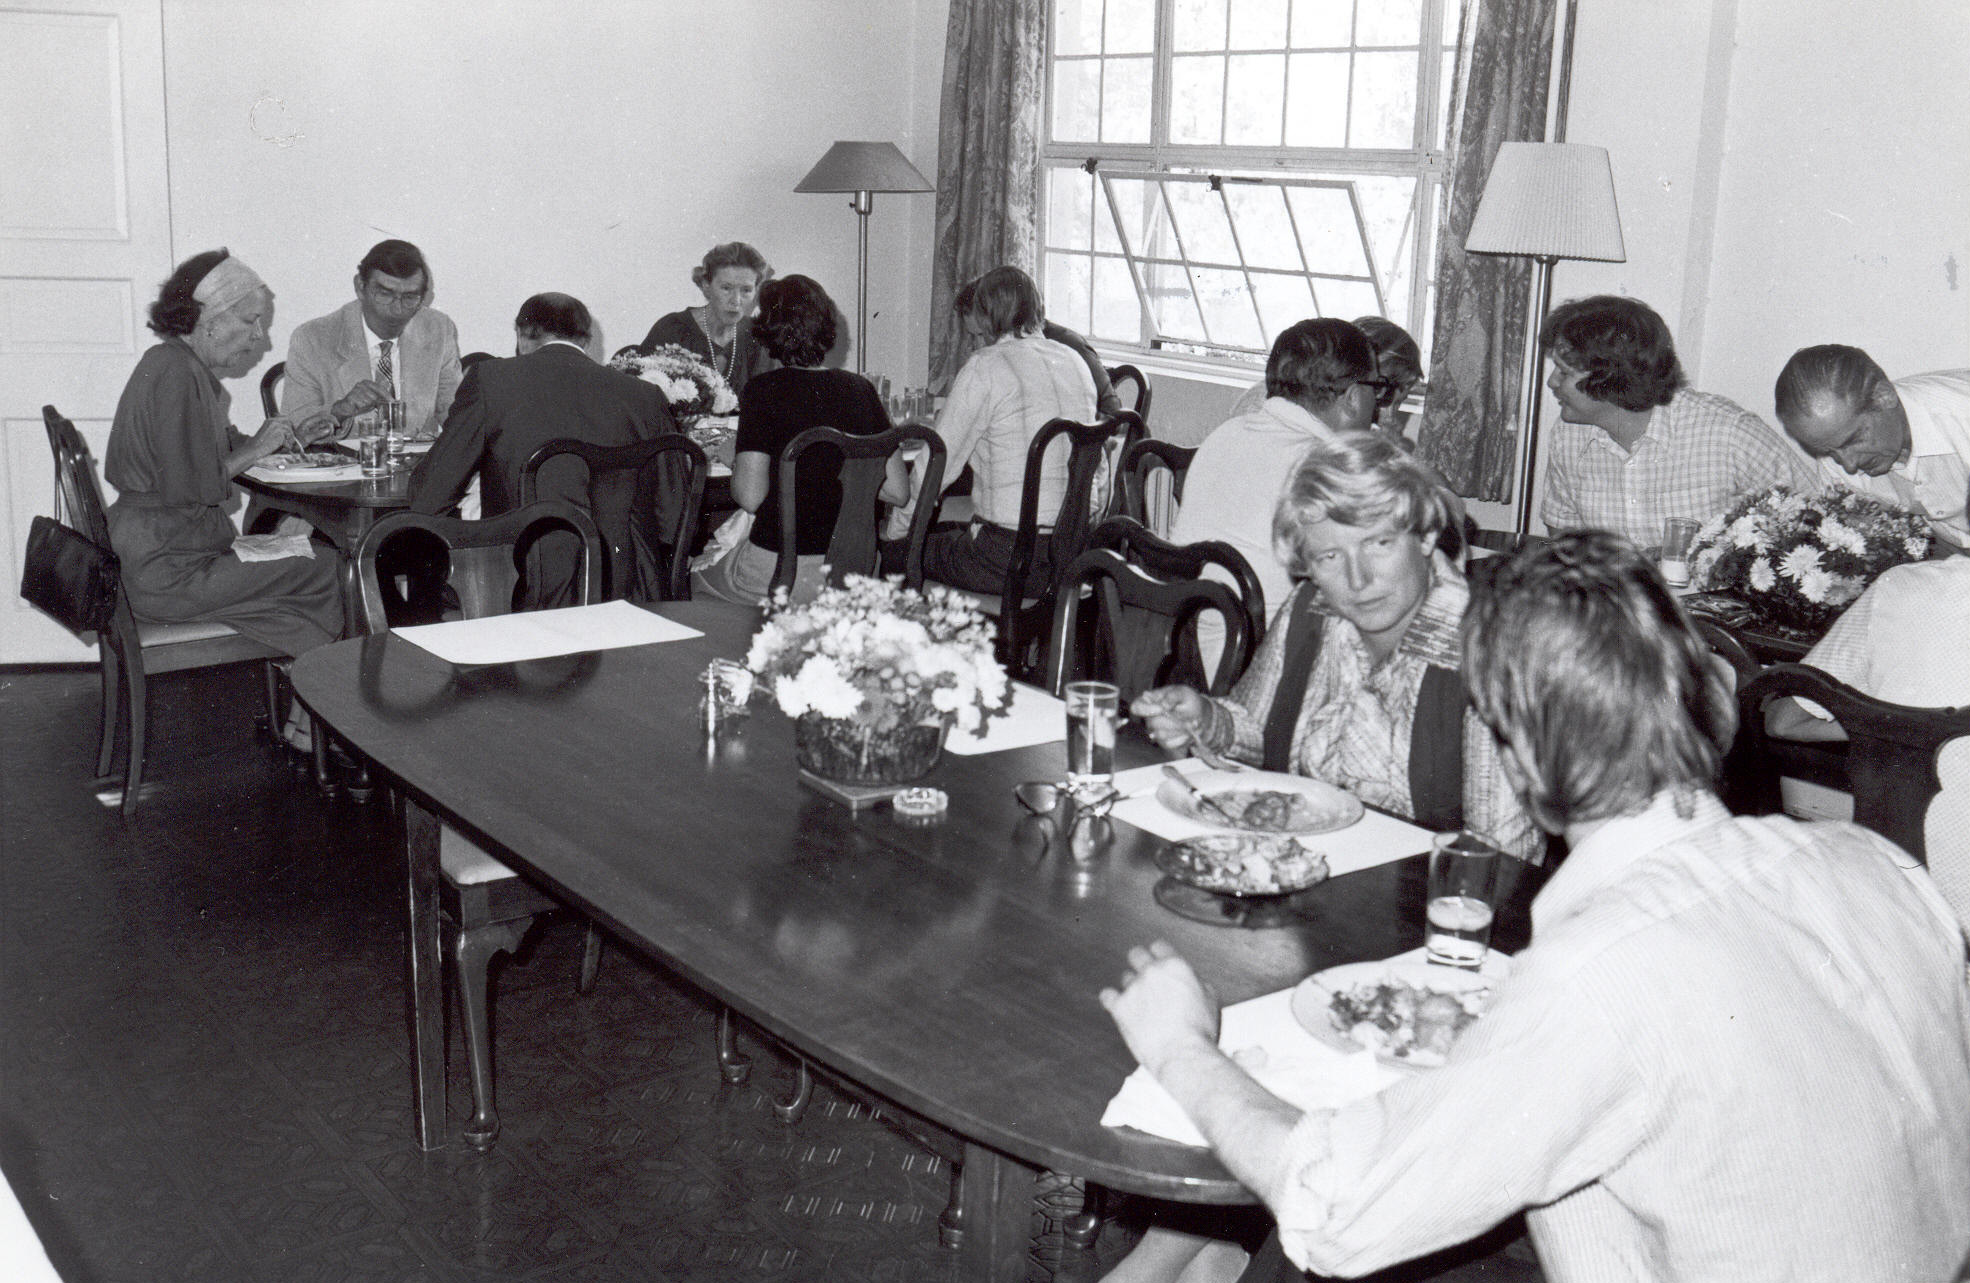 Fellows Building Dining Room, 1977-78